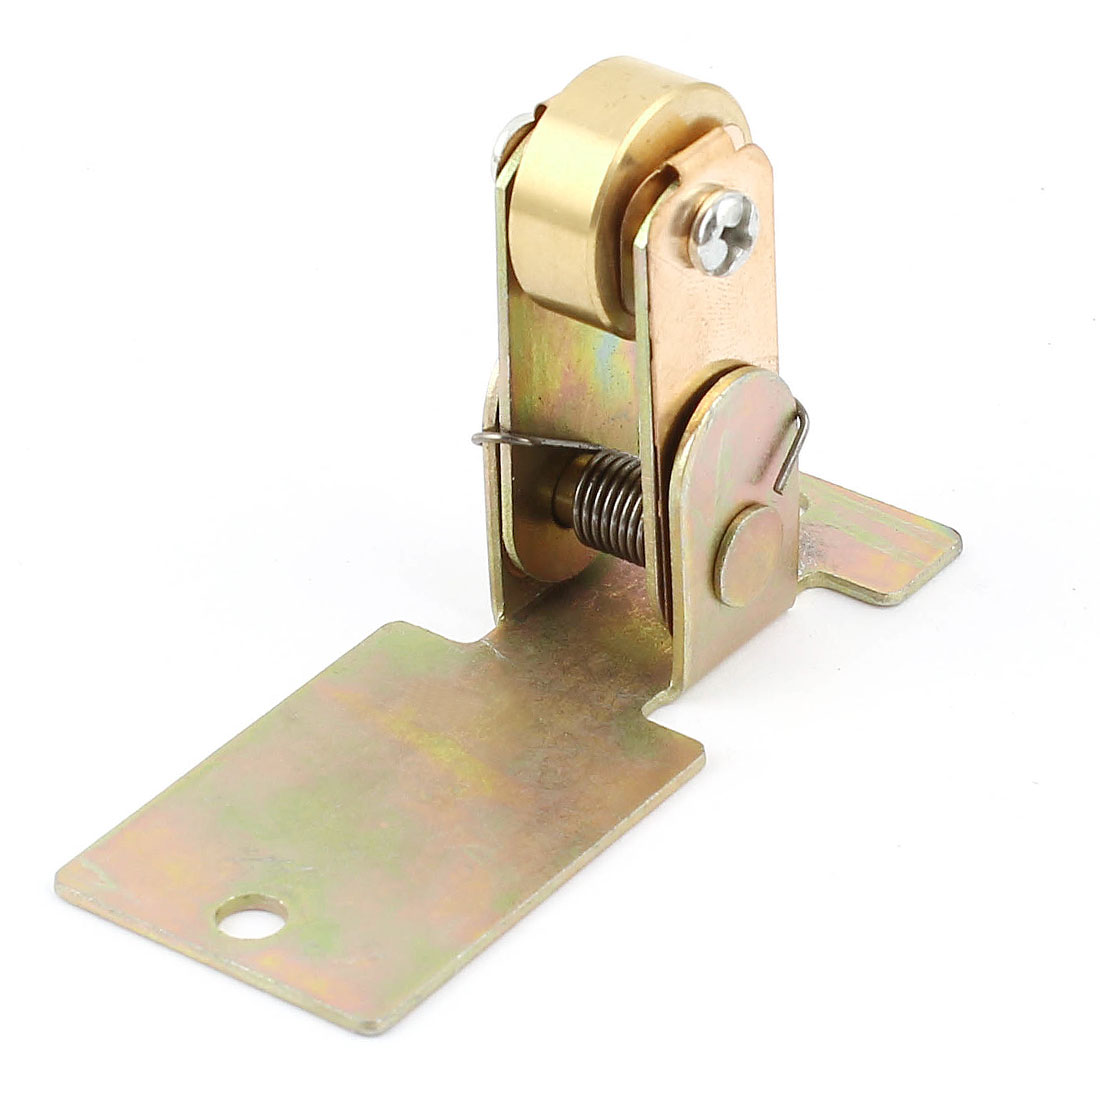 Brass 76x30mm Stand 5mm Hole Dia 20mm Two Way Conductive Wheel A-03B